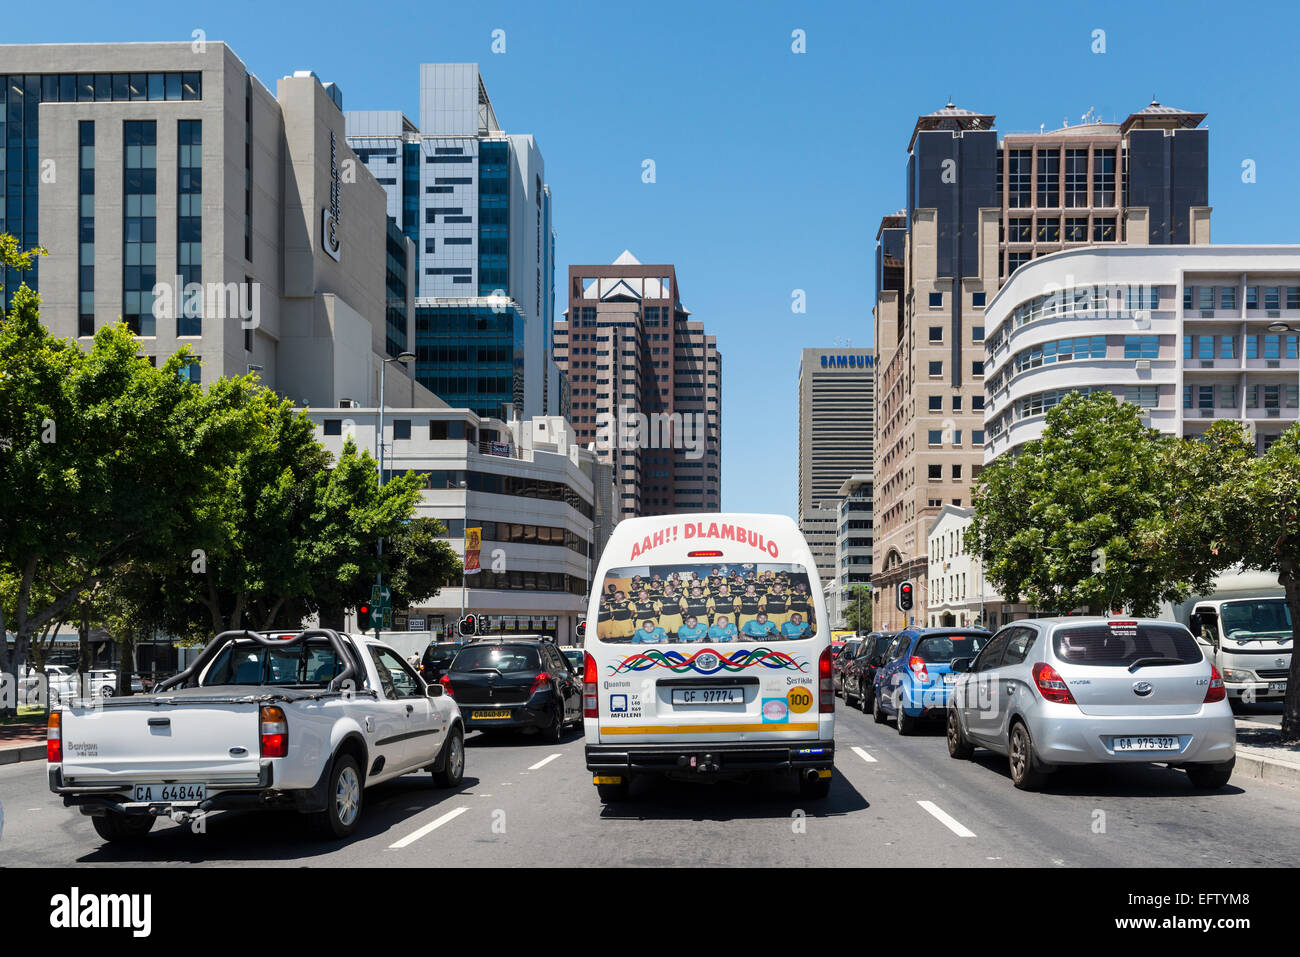 Cars and minibus in  traffic on Strand Street, Cape Town, Western Cape, South Africa - Stock Image